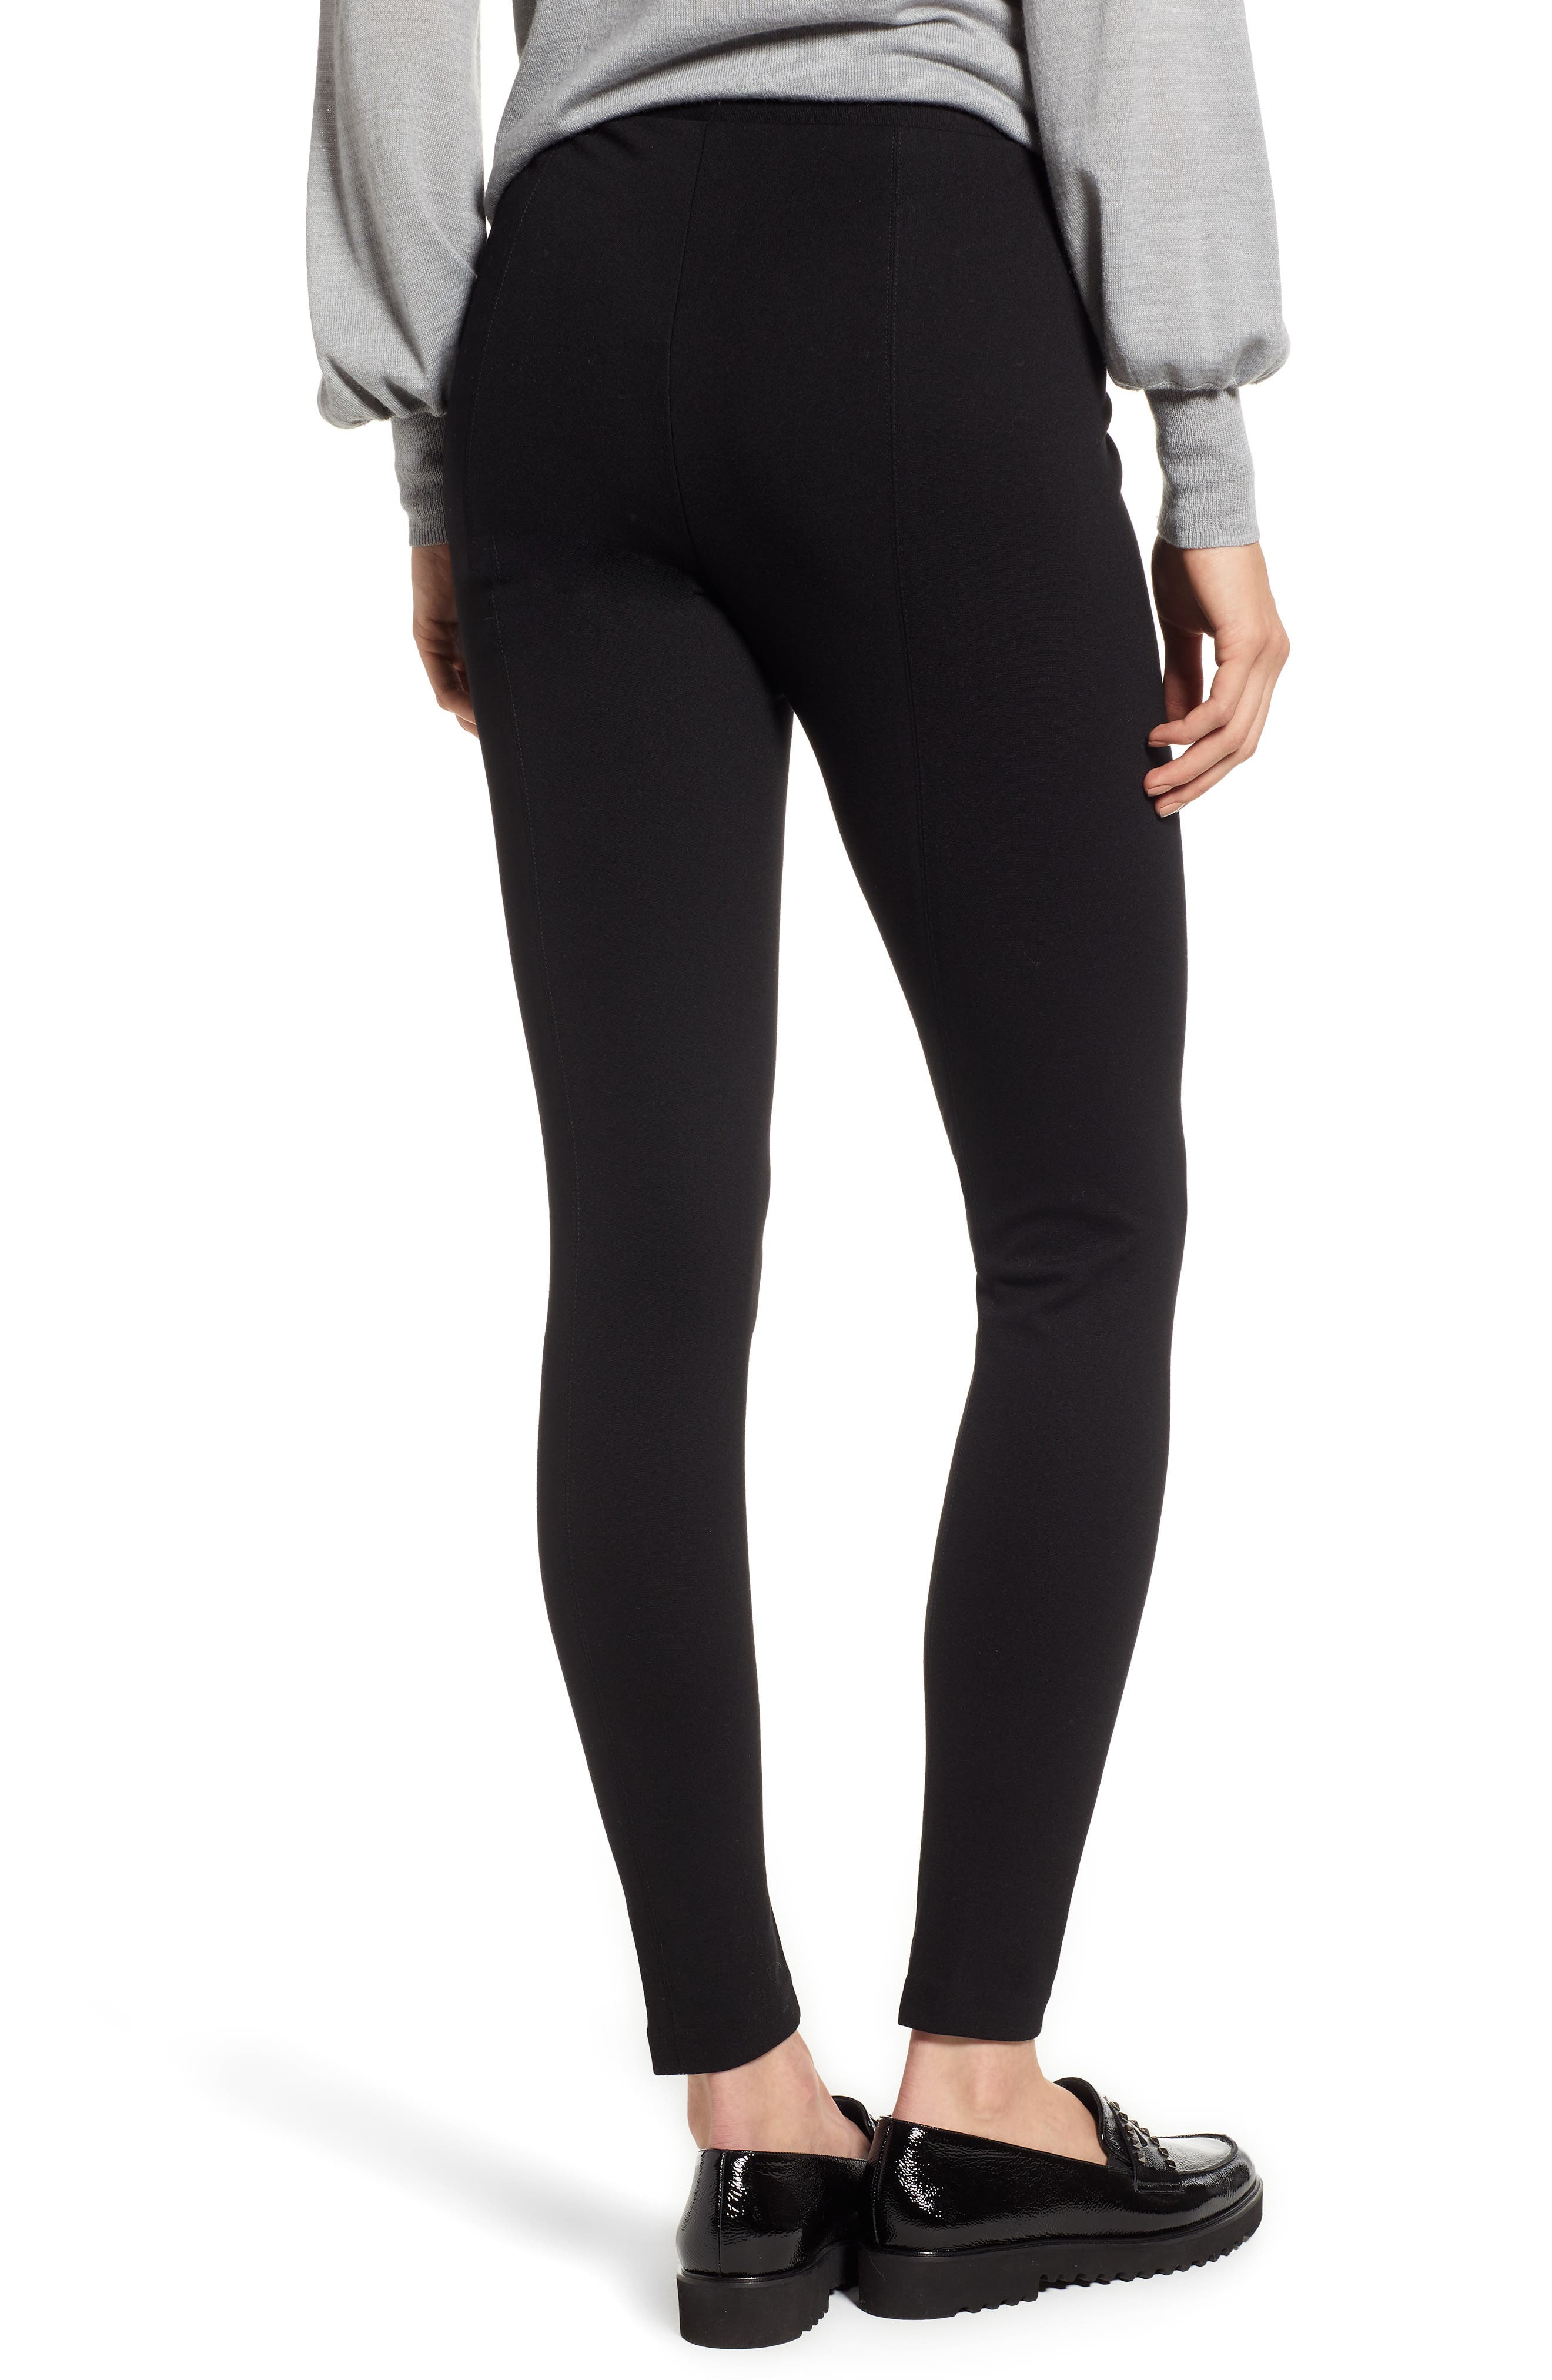 VINCE CAMUTO, Two by Vince Camuto Seamed Back Leggings, Alternate thumbnail 2, color, RICH BLACK